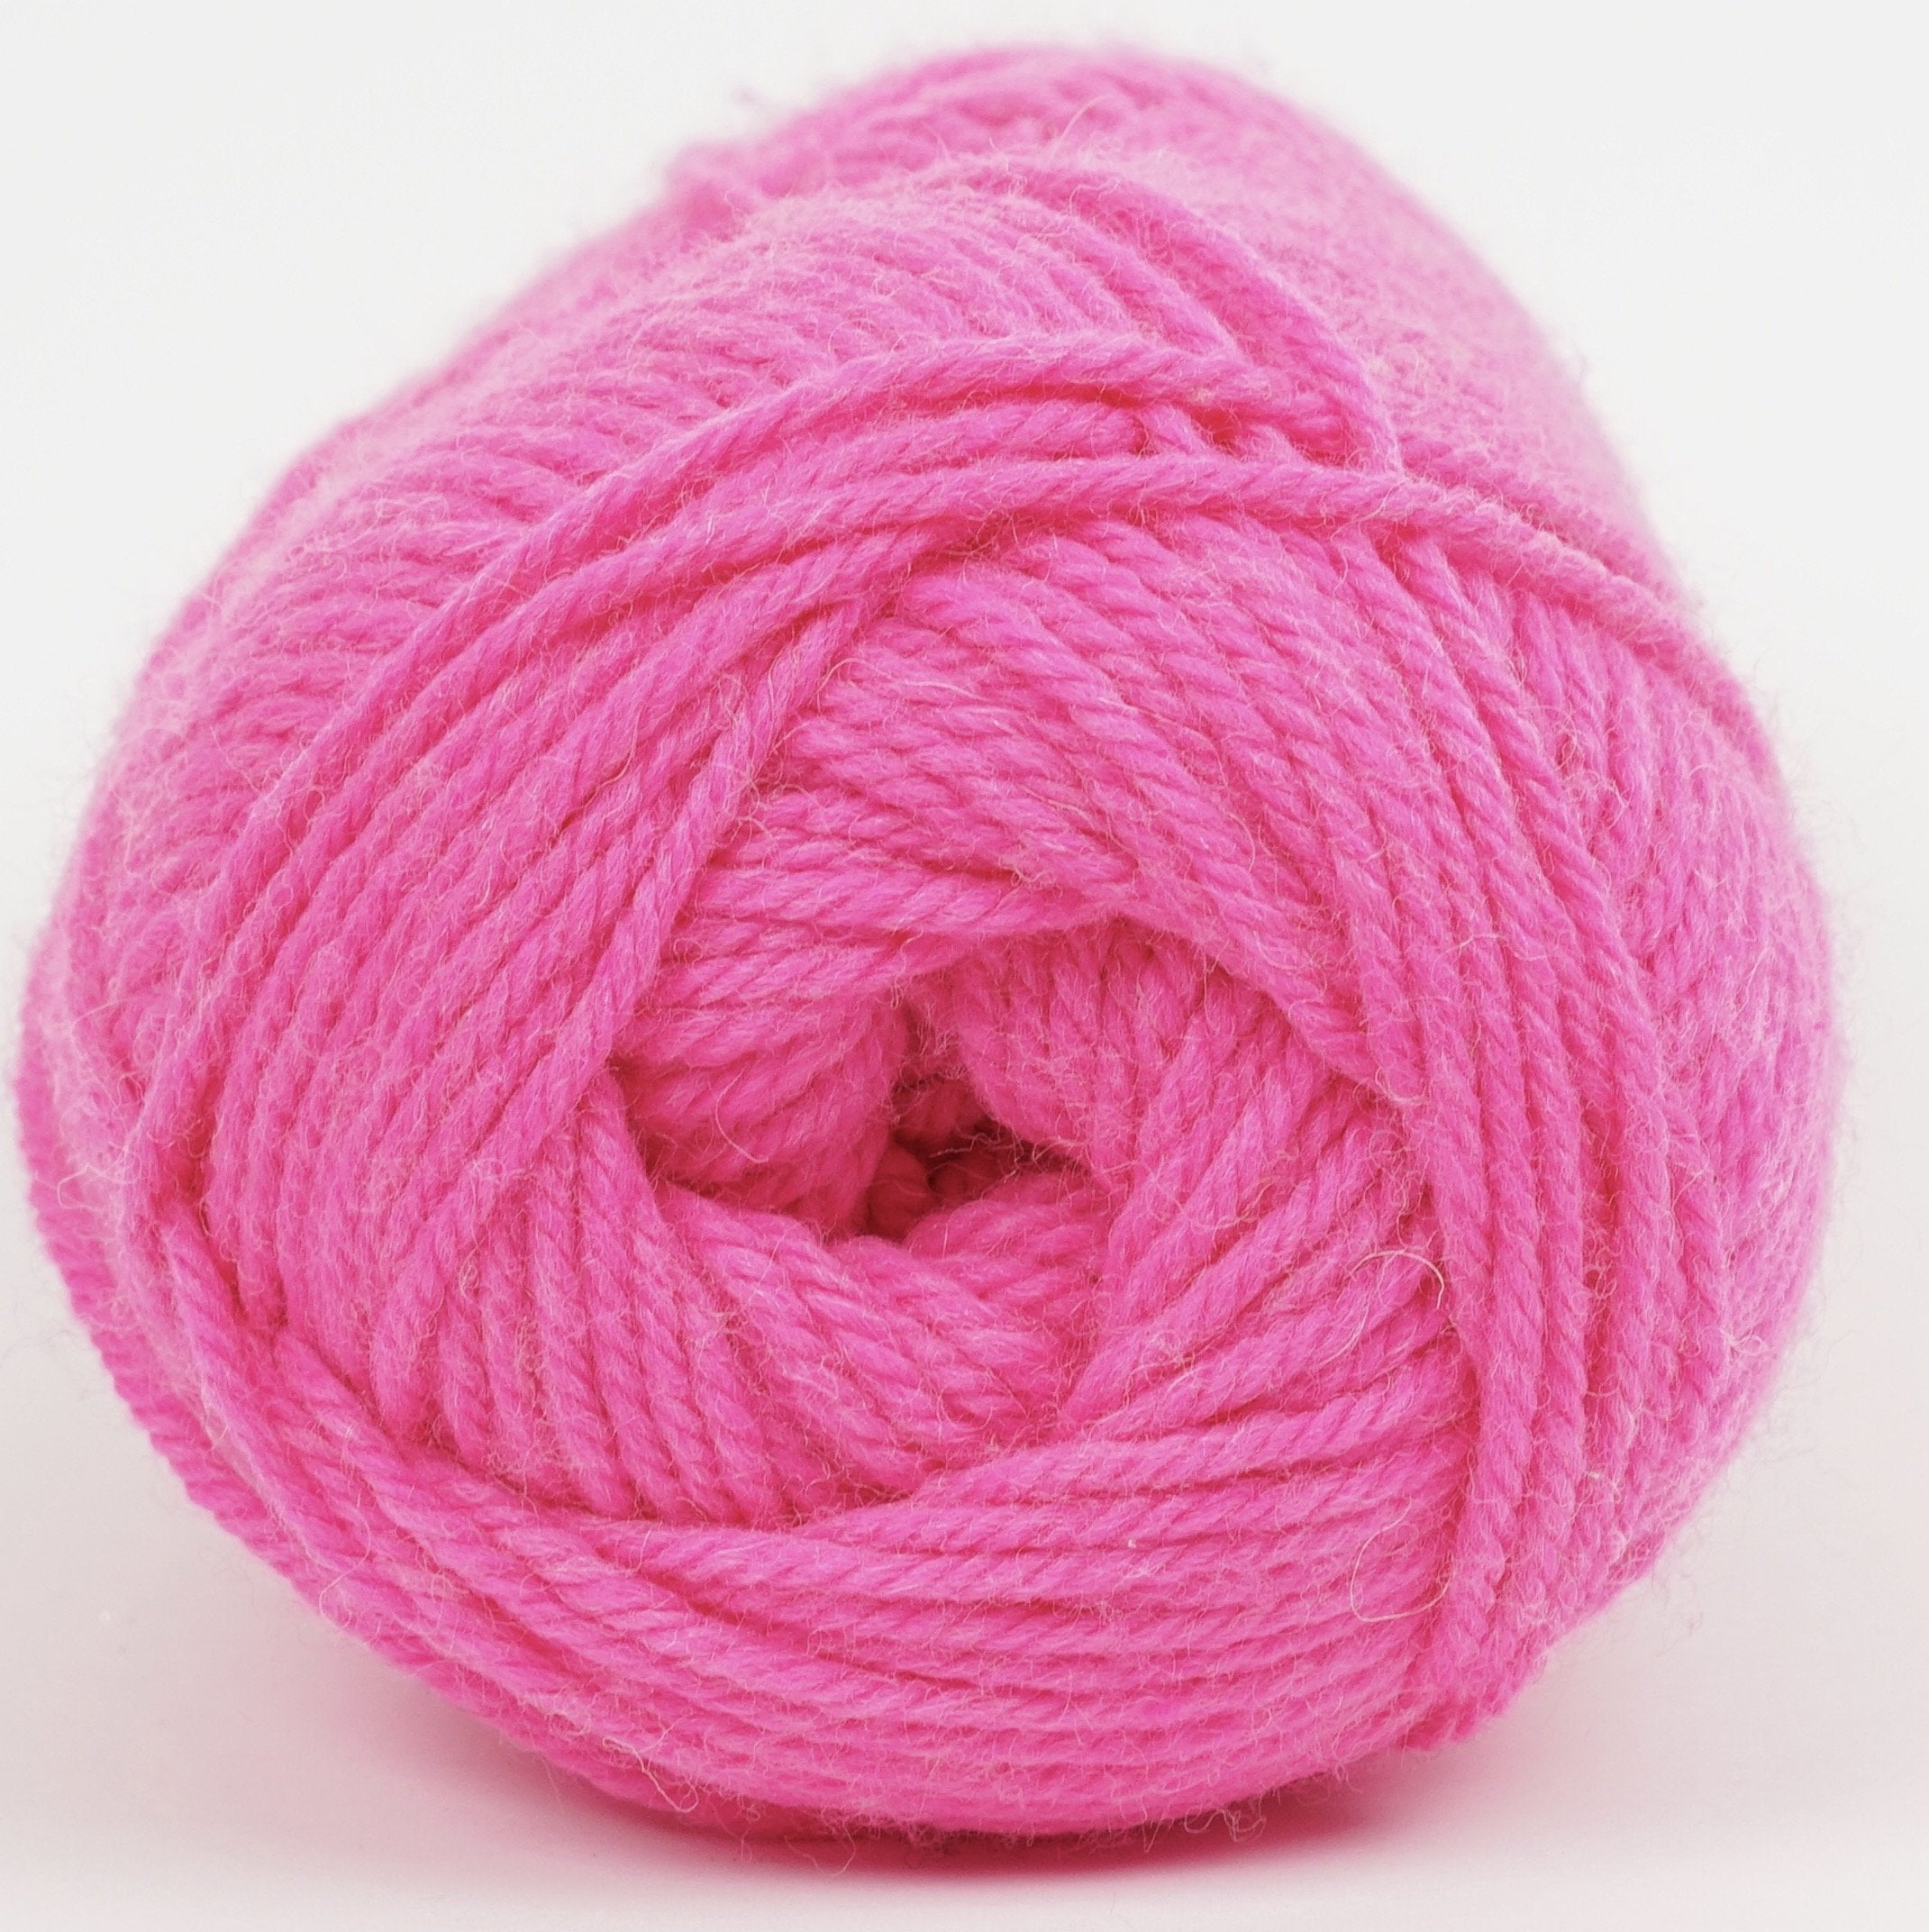 Kraemer Perfection Worsted Kiss Me Hot Pink Neon